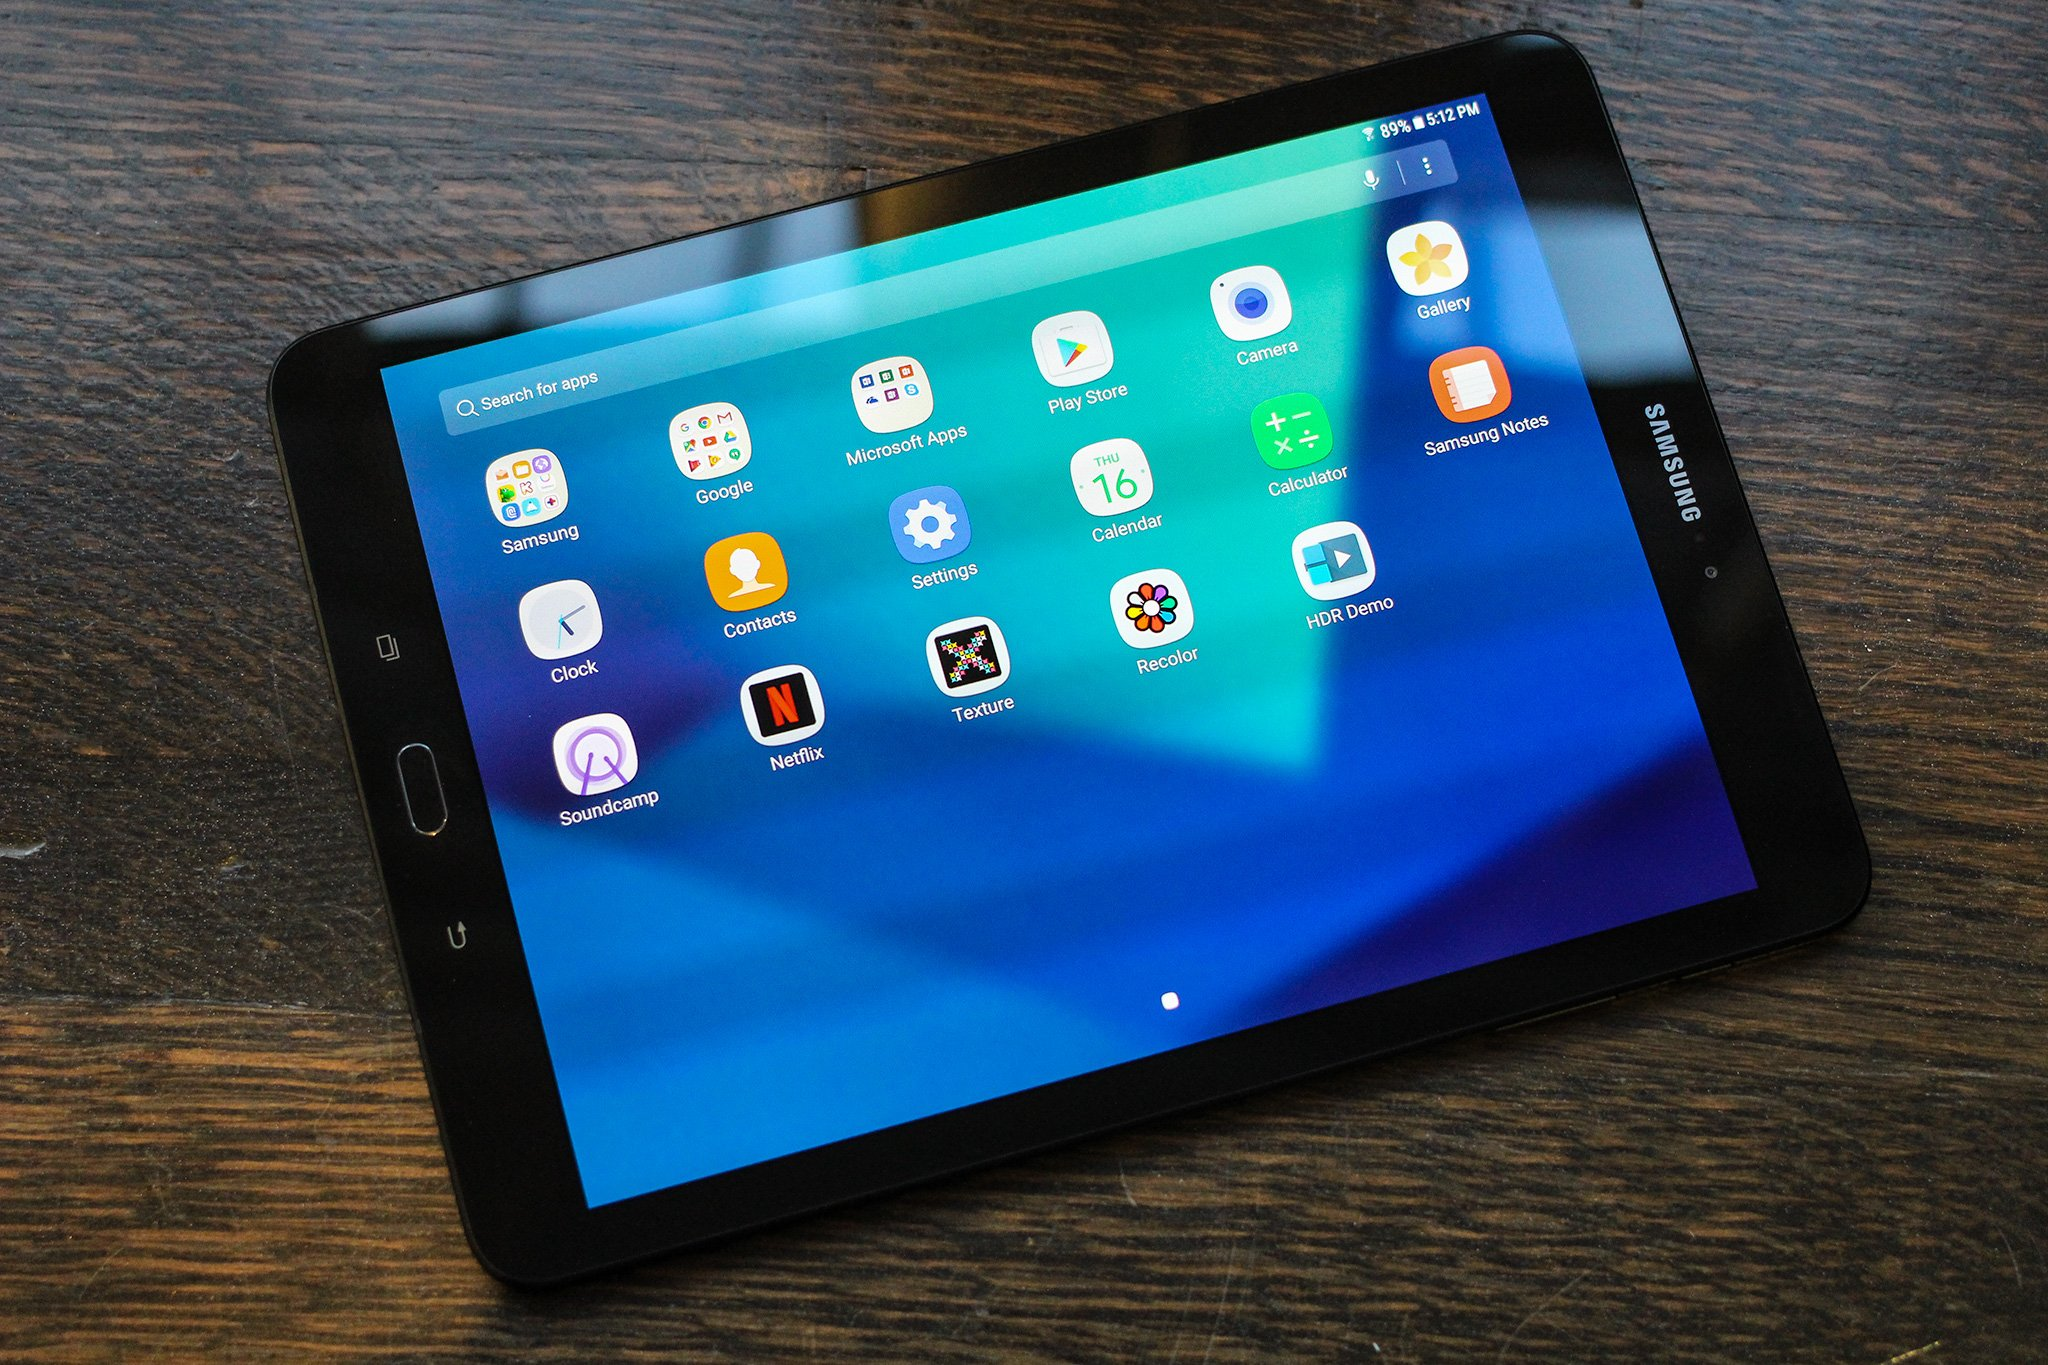 Samsung Tab S3 Samsung Galaxy Tab S3 Specs Android Central